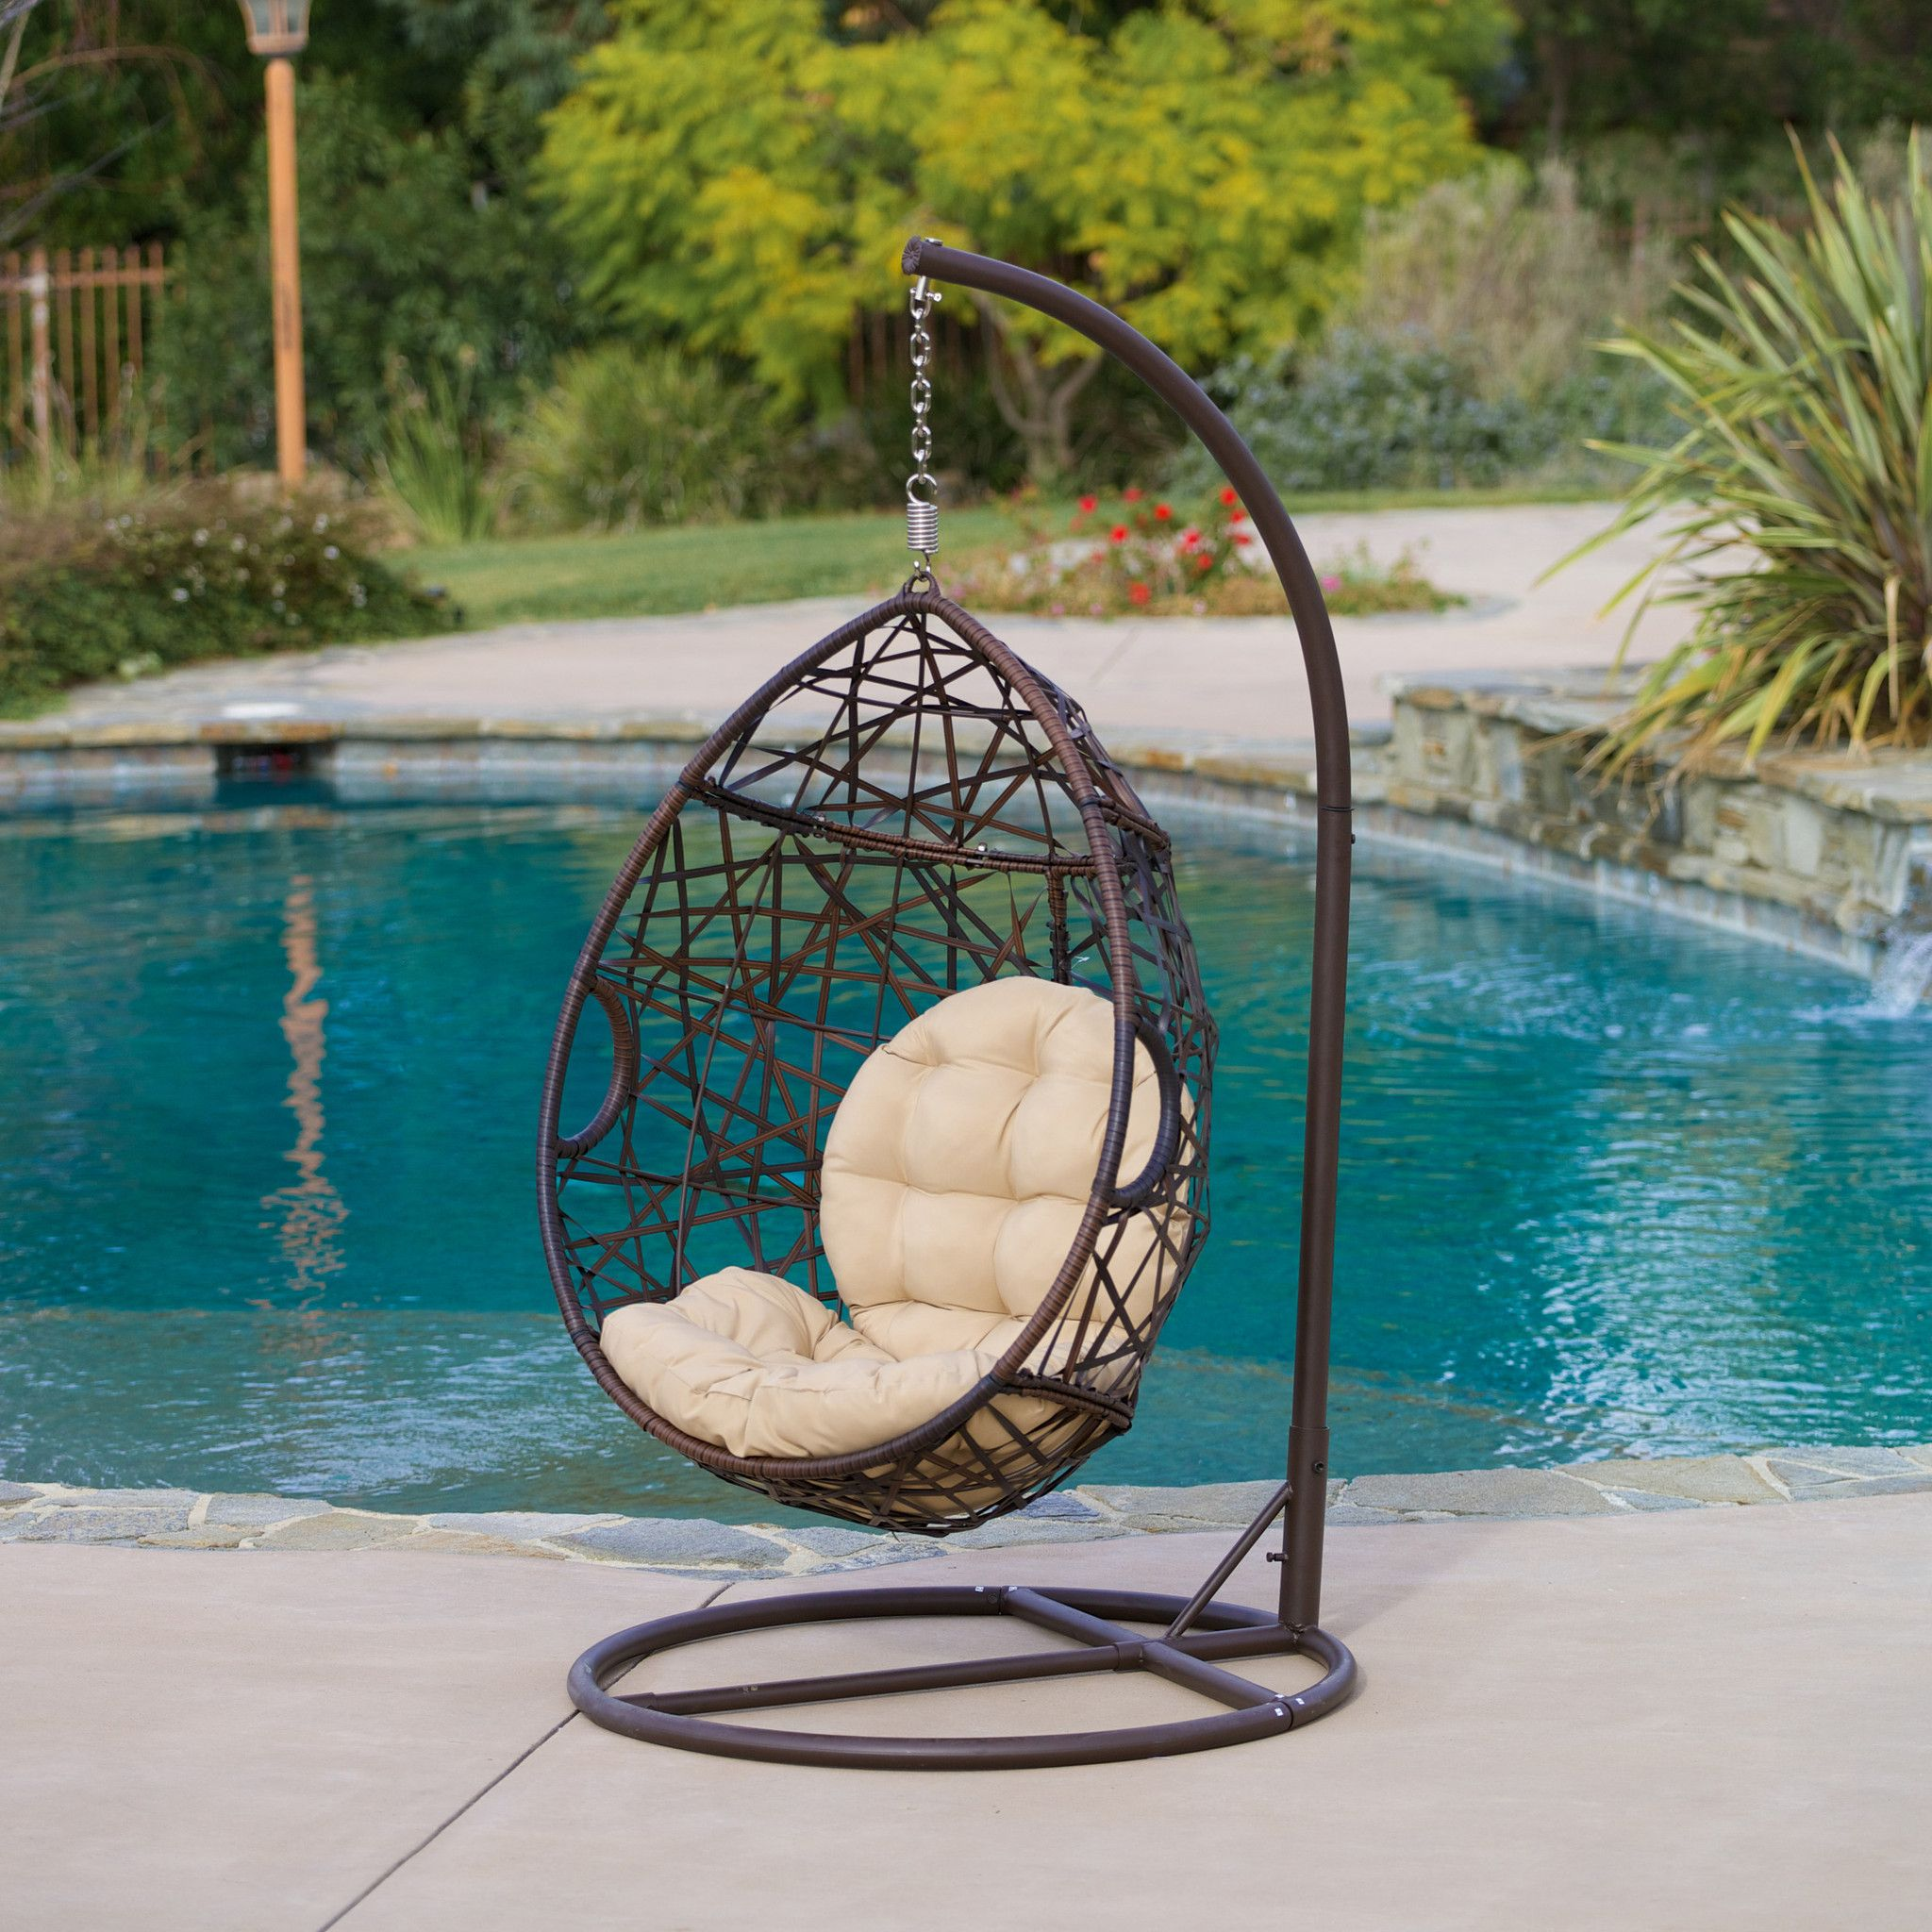 Berkley outdoor swinging egg chair egg chair container bar and